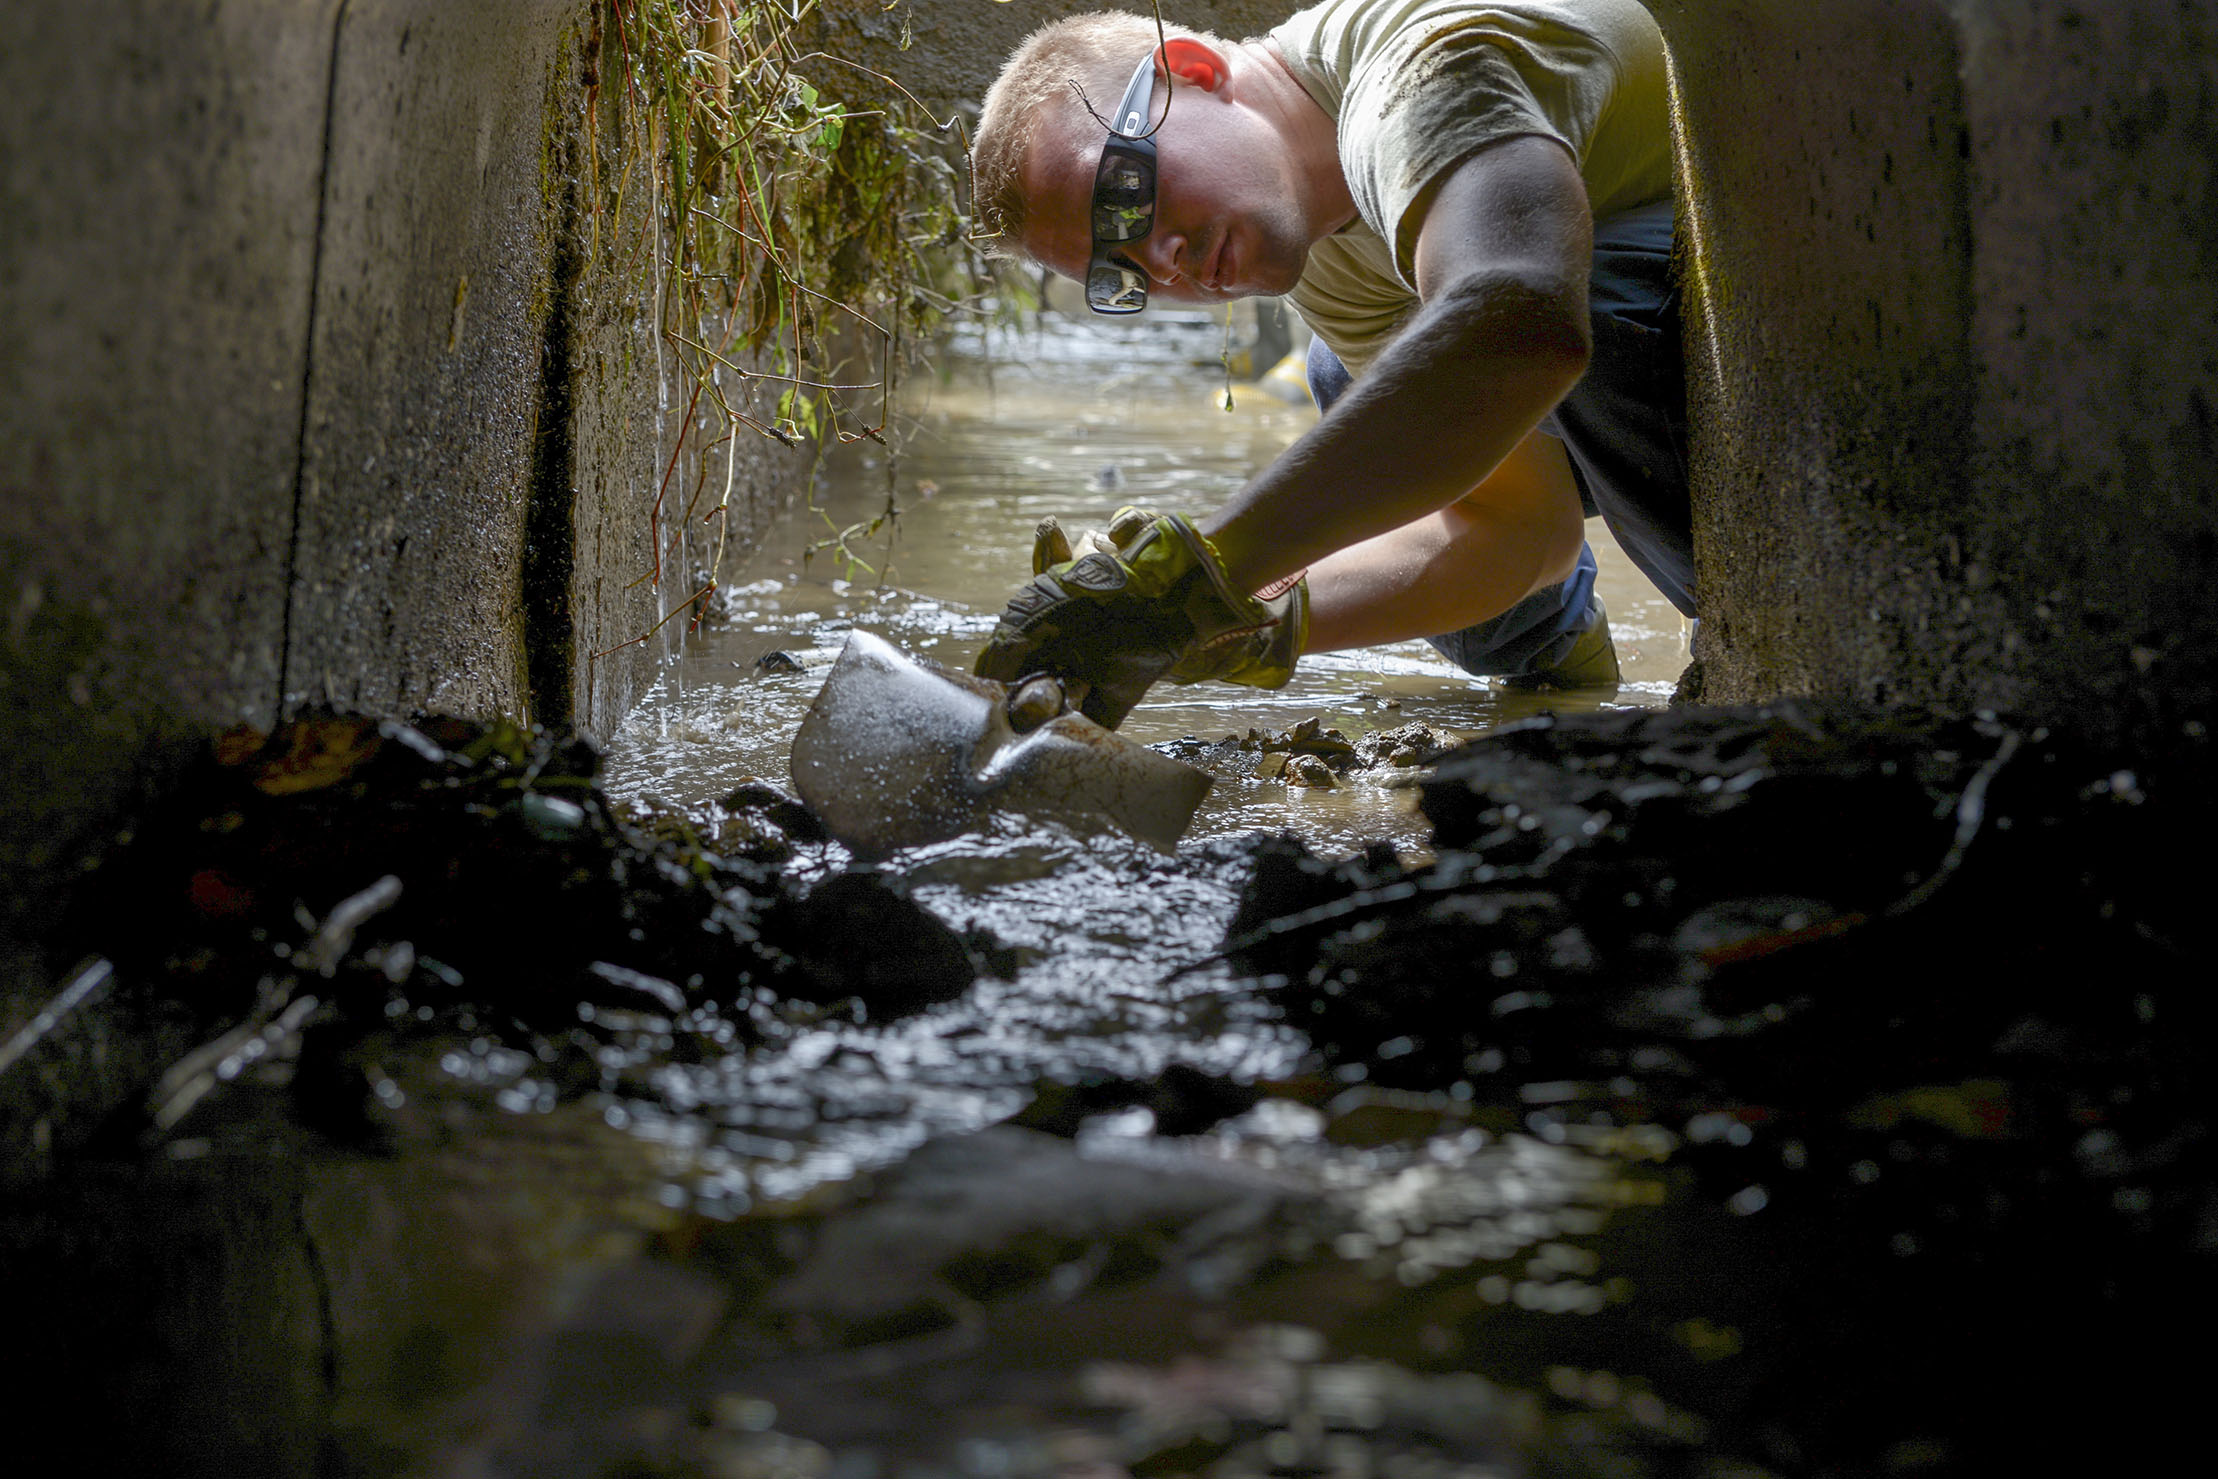 Airman 1st Class Thomas Smith, 374th Civil Engineer Squadron fire protection services, shovels mud from an irrigation system at Kanuma City, Tochigi prefecture, Japan, Sept. 15, 2015. Smith and other members of a large volunteer force from Yokota Air Base, ventured to Tochigi to assist the locals with mud removal, sand bagging and fixing what was broken during a recent flood and landslide. (U.S. Air Force photo by Staff Sgt. Cody H. Ramirez/Released)